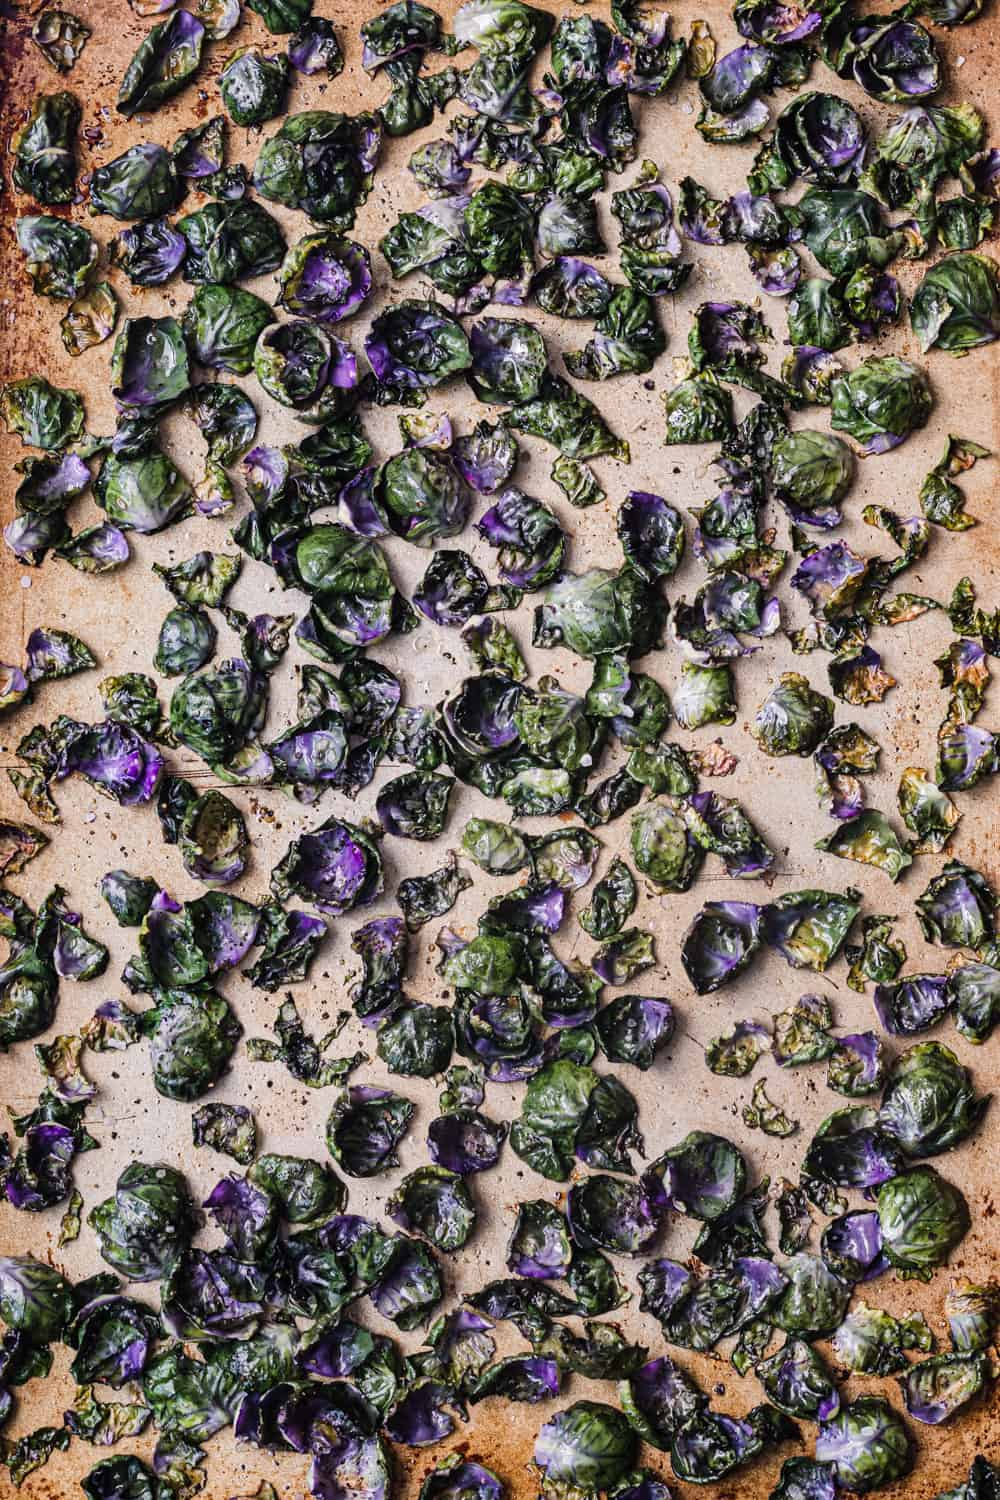 Loose purple Brussels sprout leaves just out of oven, where they turned a bit blue, on a baking sheet + overhead shot.